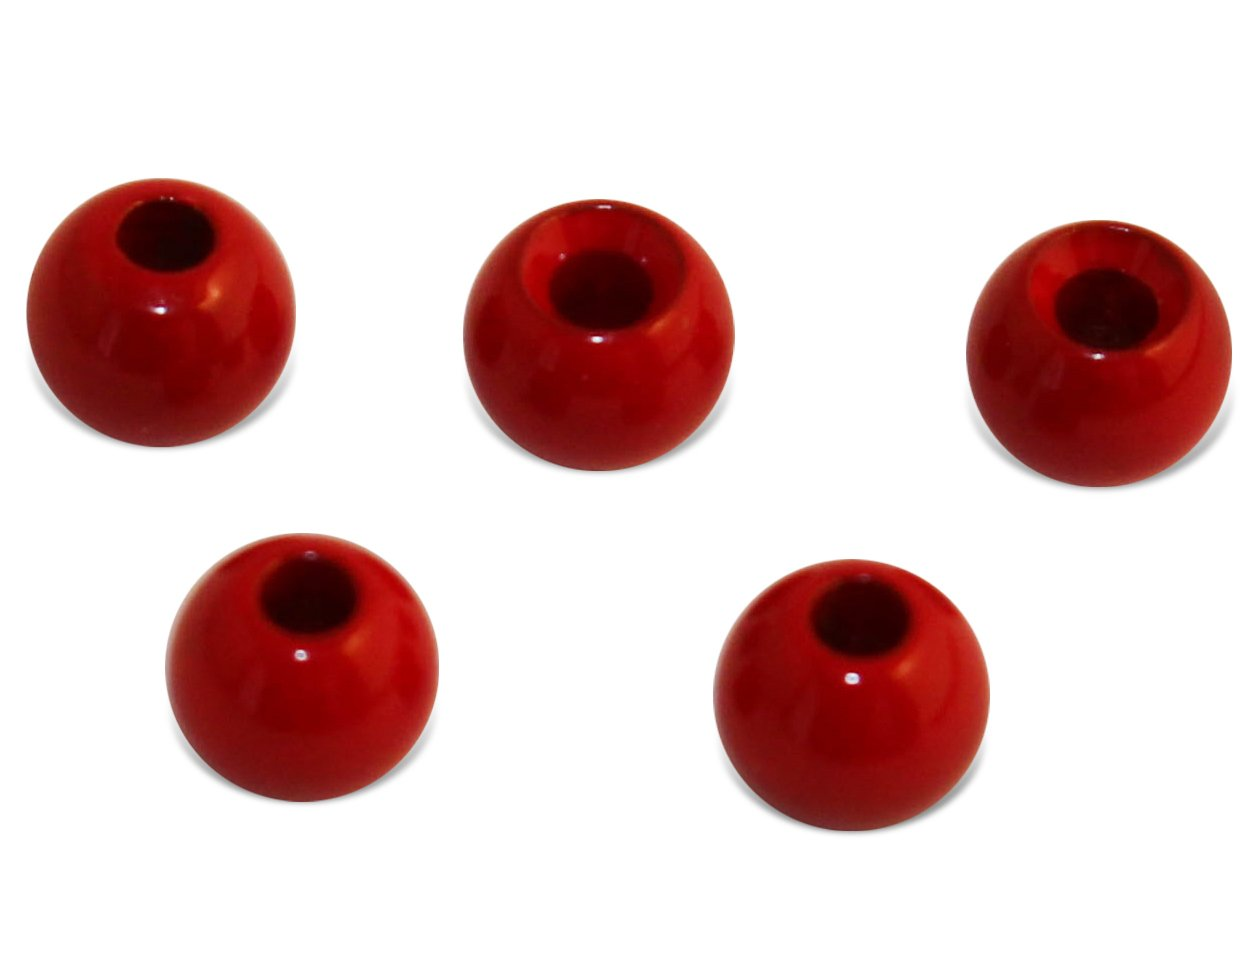 Prime Fish Co. Brass Fly Tying Bead Heads 100 Count (2.0mm, Blood Red)